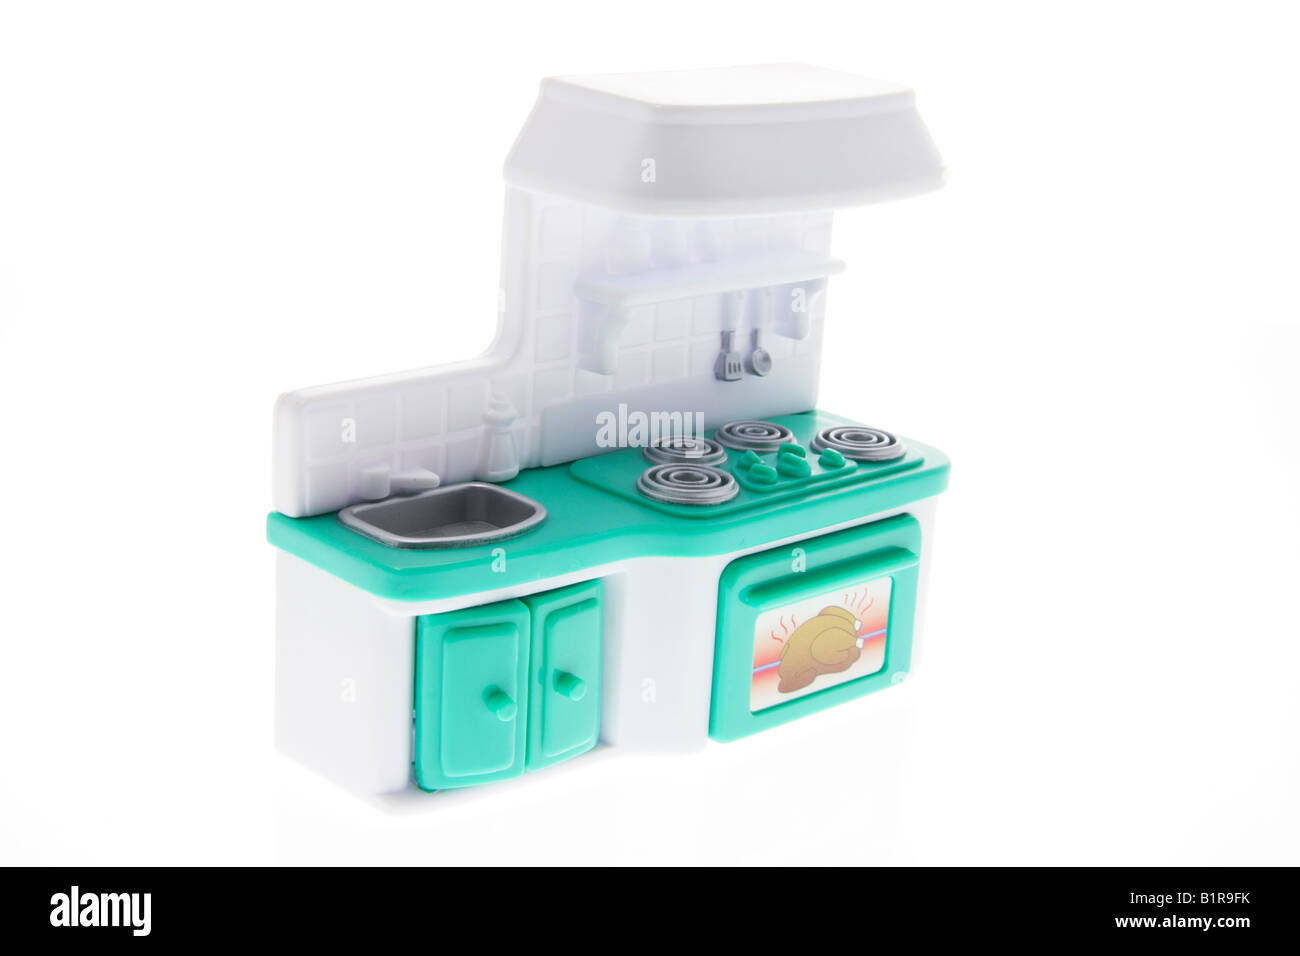 Miniature Kitchen Utensils Stock Photos & Miniature Kitchen Utensils ...